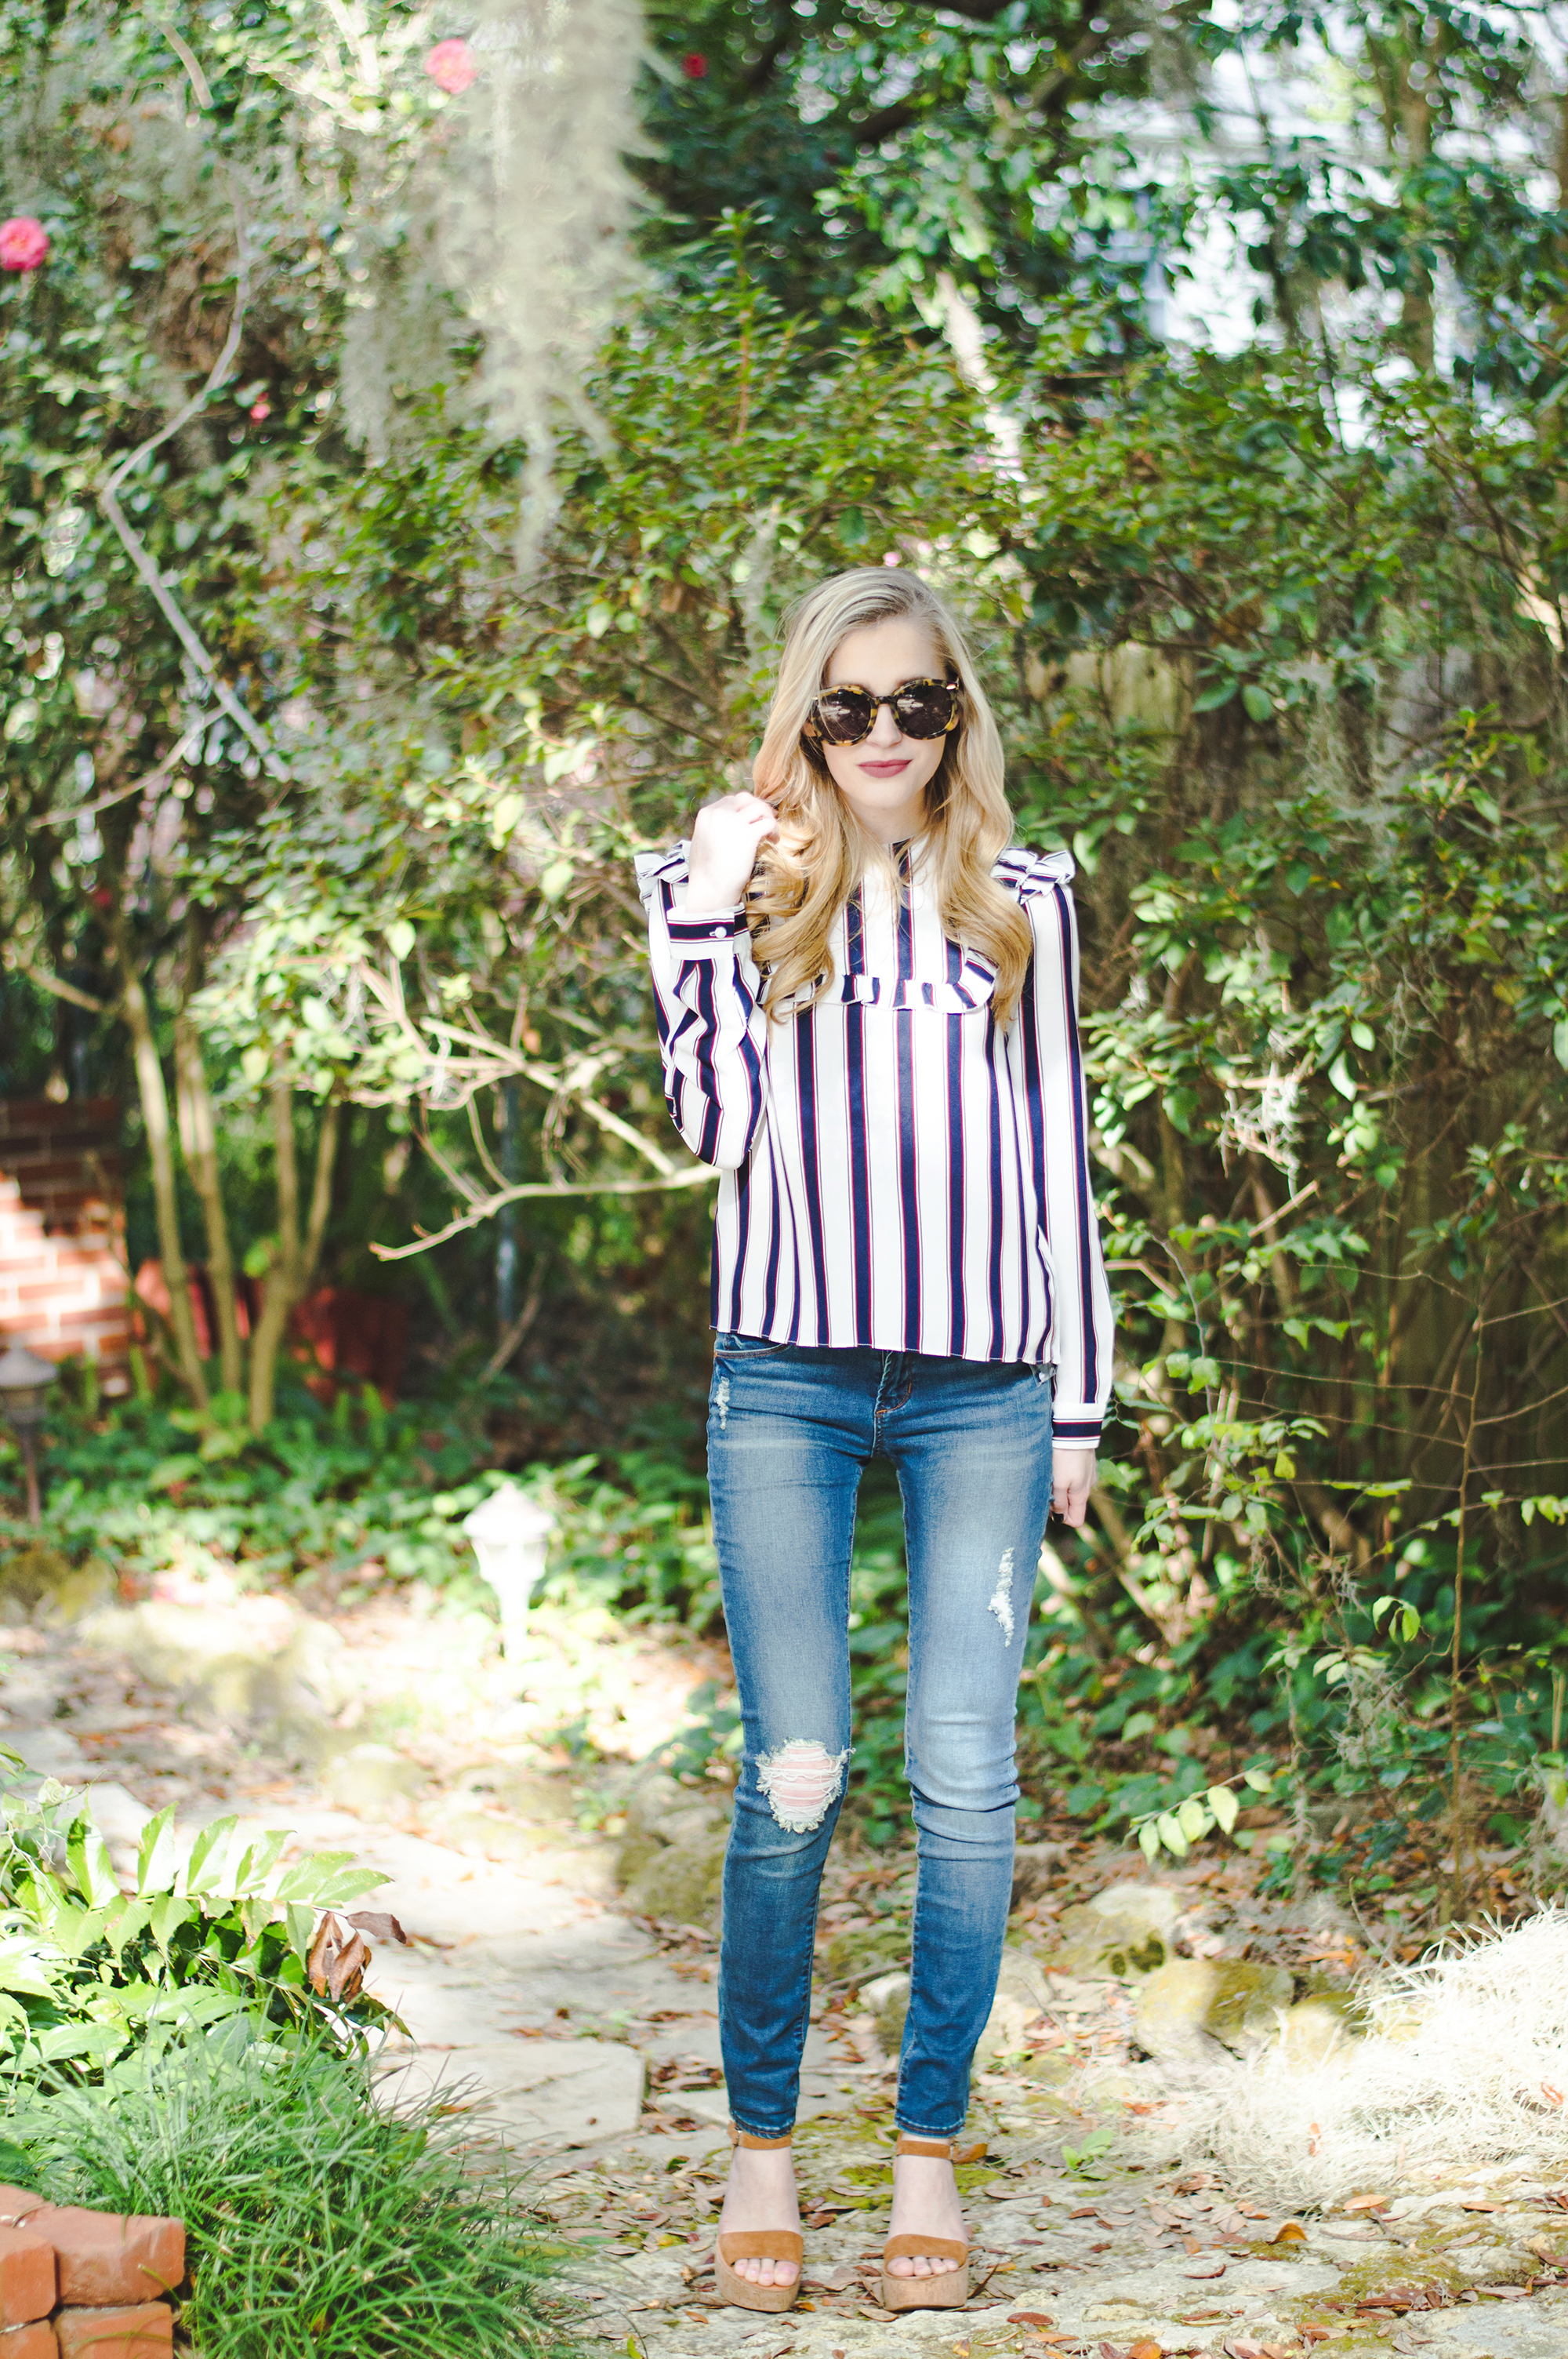 styelled-blog-elle-elisabeth-fashion-style-blogger-fblogger-like-to-know-it-articles-of-society-english-factory-karen-walker-dolce-vita-shop-smac-stripes-09